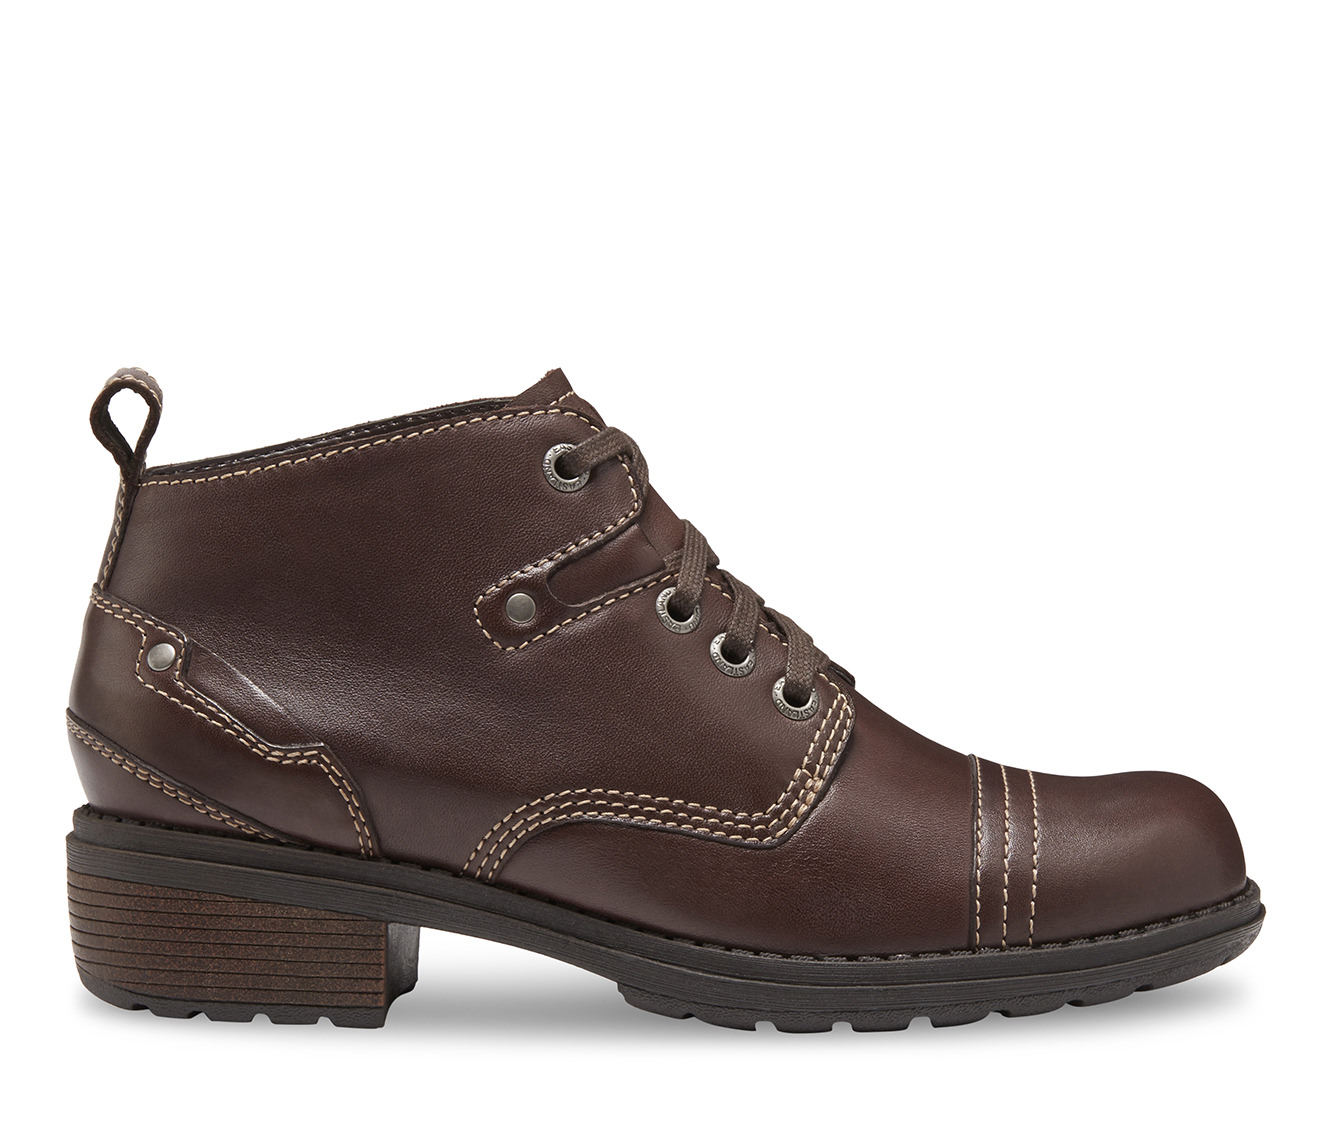 Eastland Overdrive Women's Boots (Brown - Leather)